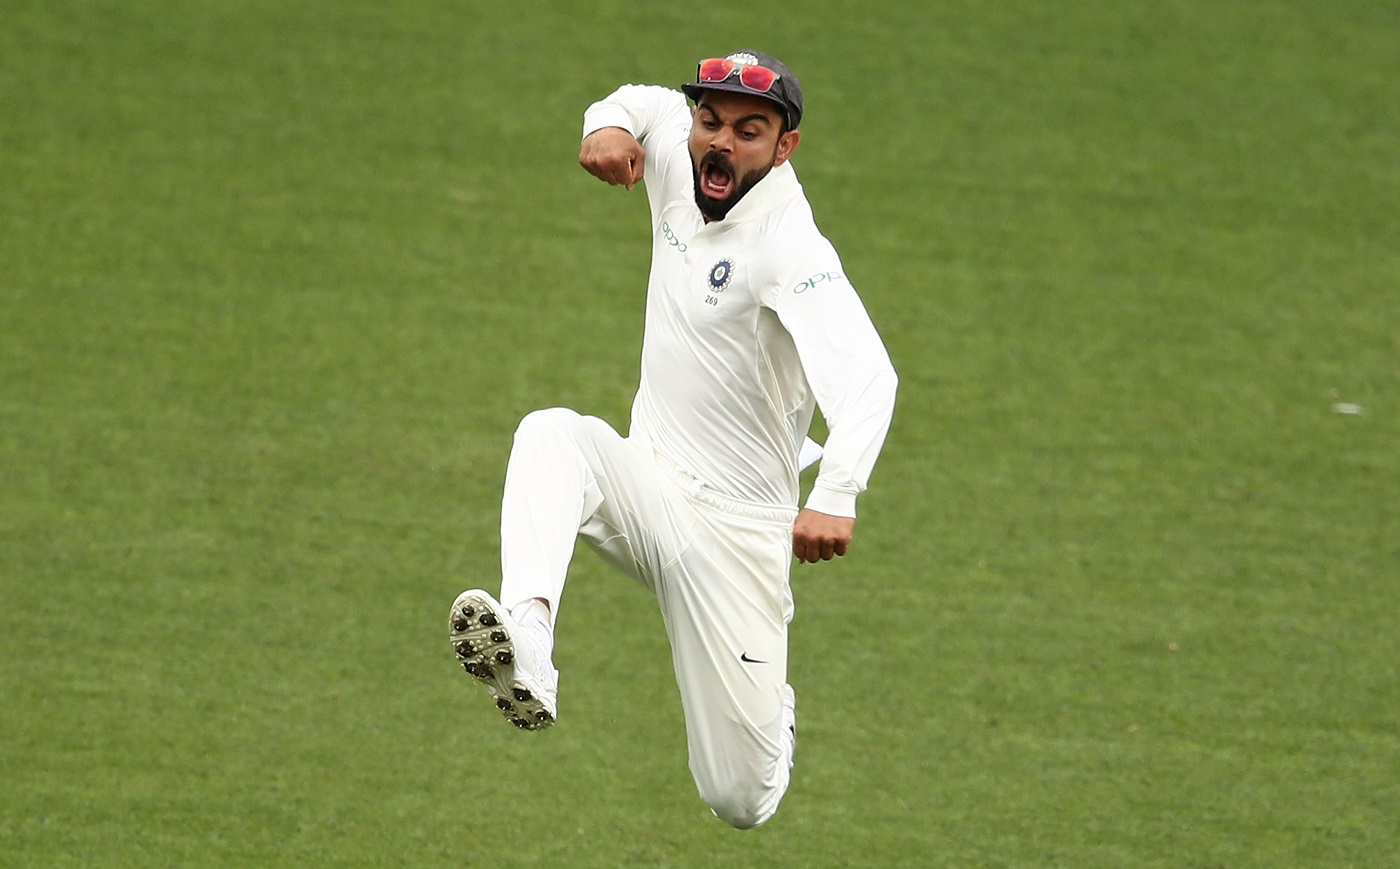 Virat Kohli becomes the first player in history to clean sweep three major ICC awards